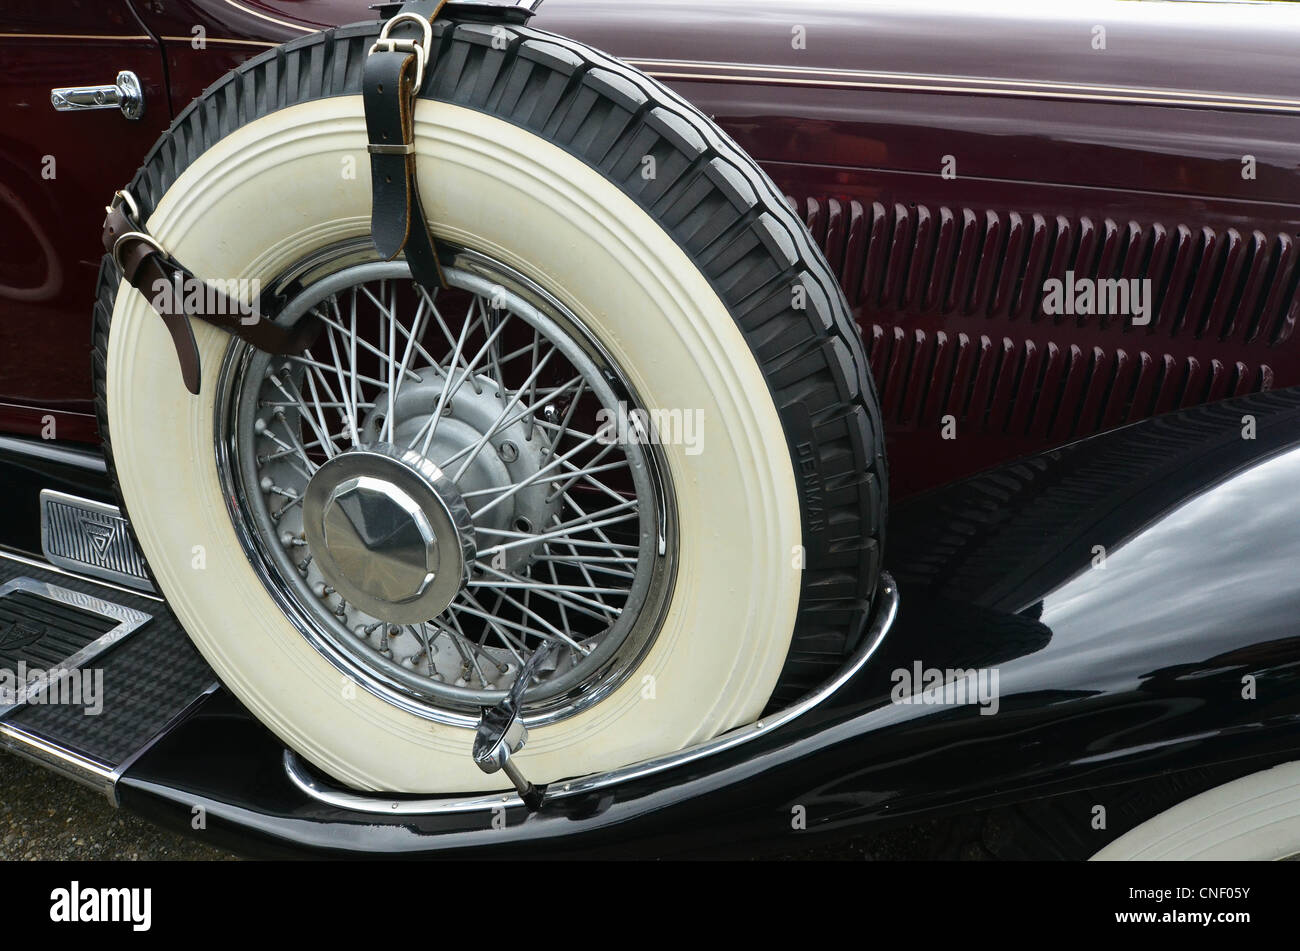 Classic Car close up with whitewall tyre. - Stock Image